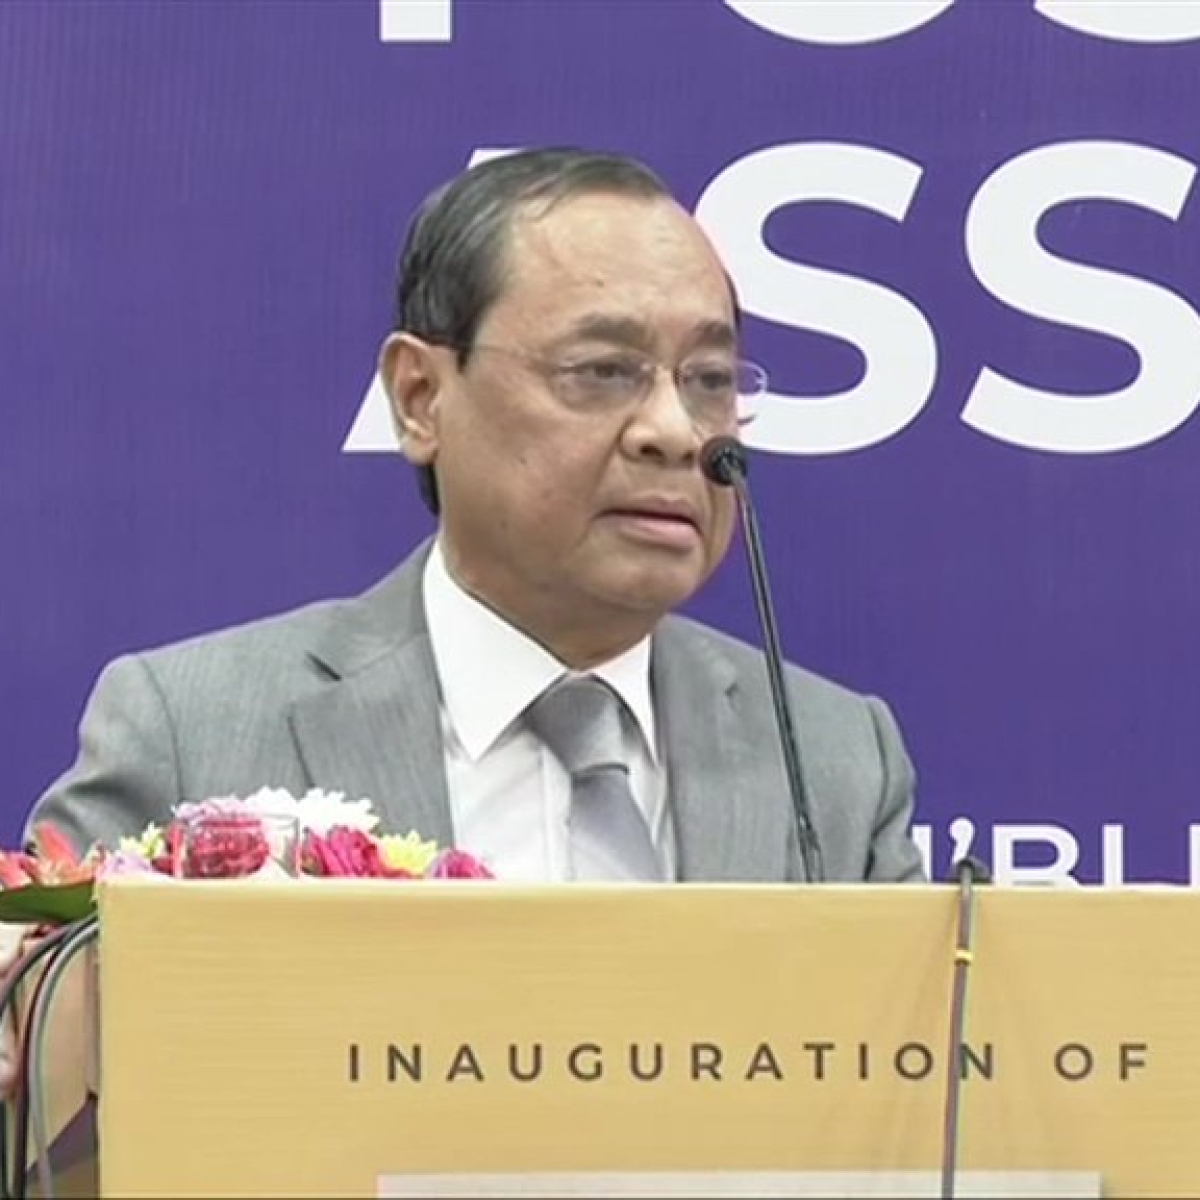 Ayodhya dispute case: Judgement is unanimous, says CJI Ranjan Gogoi